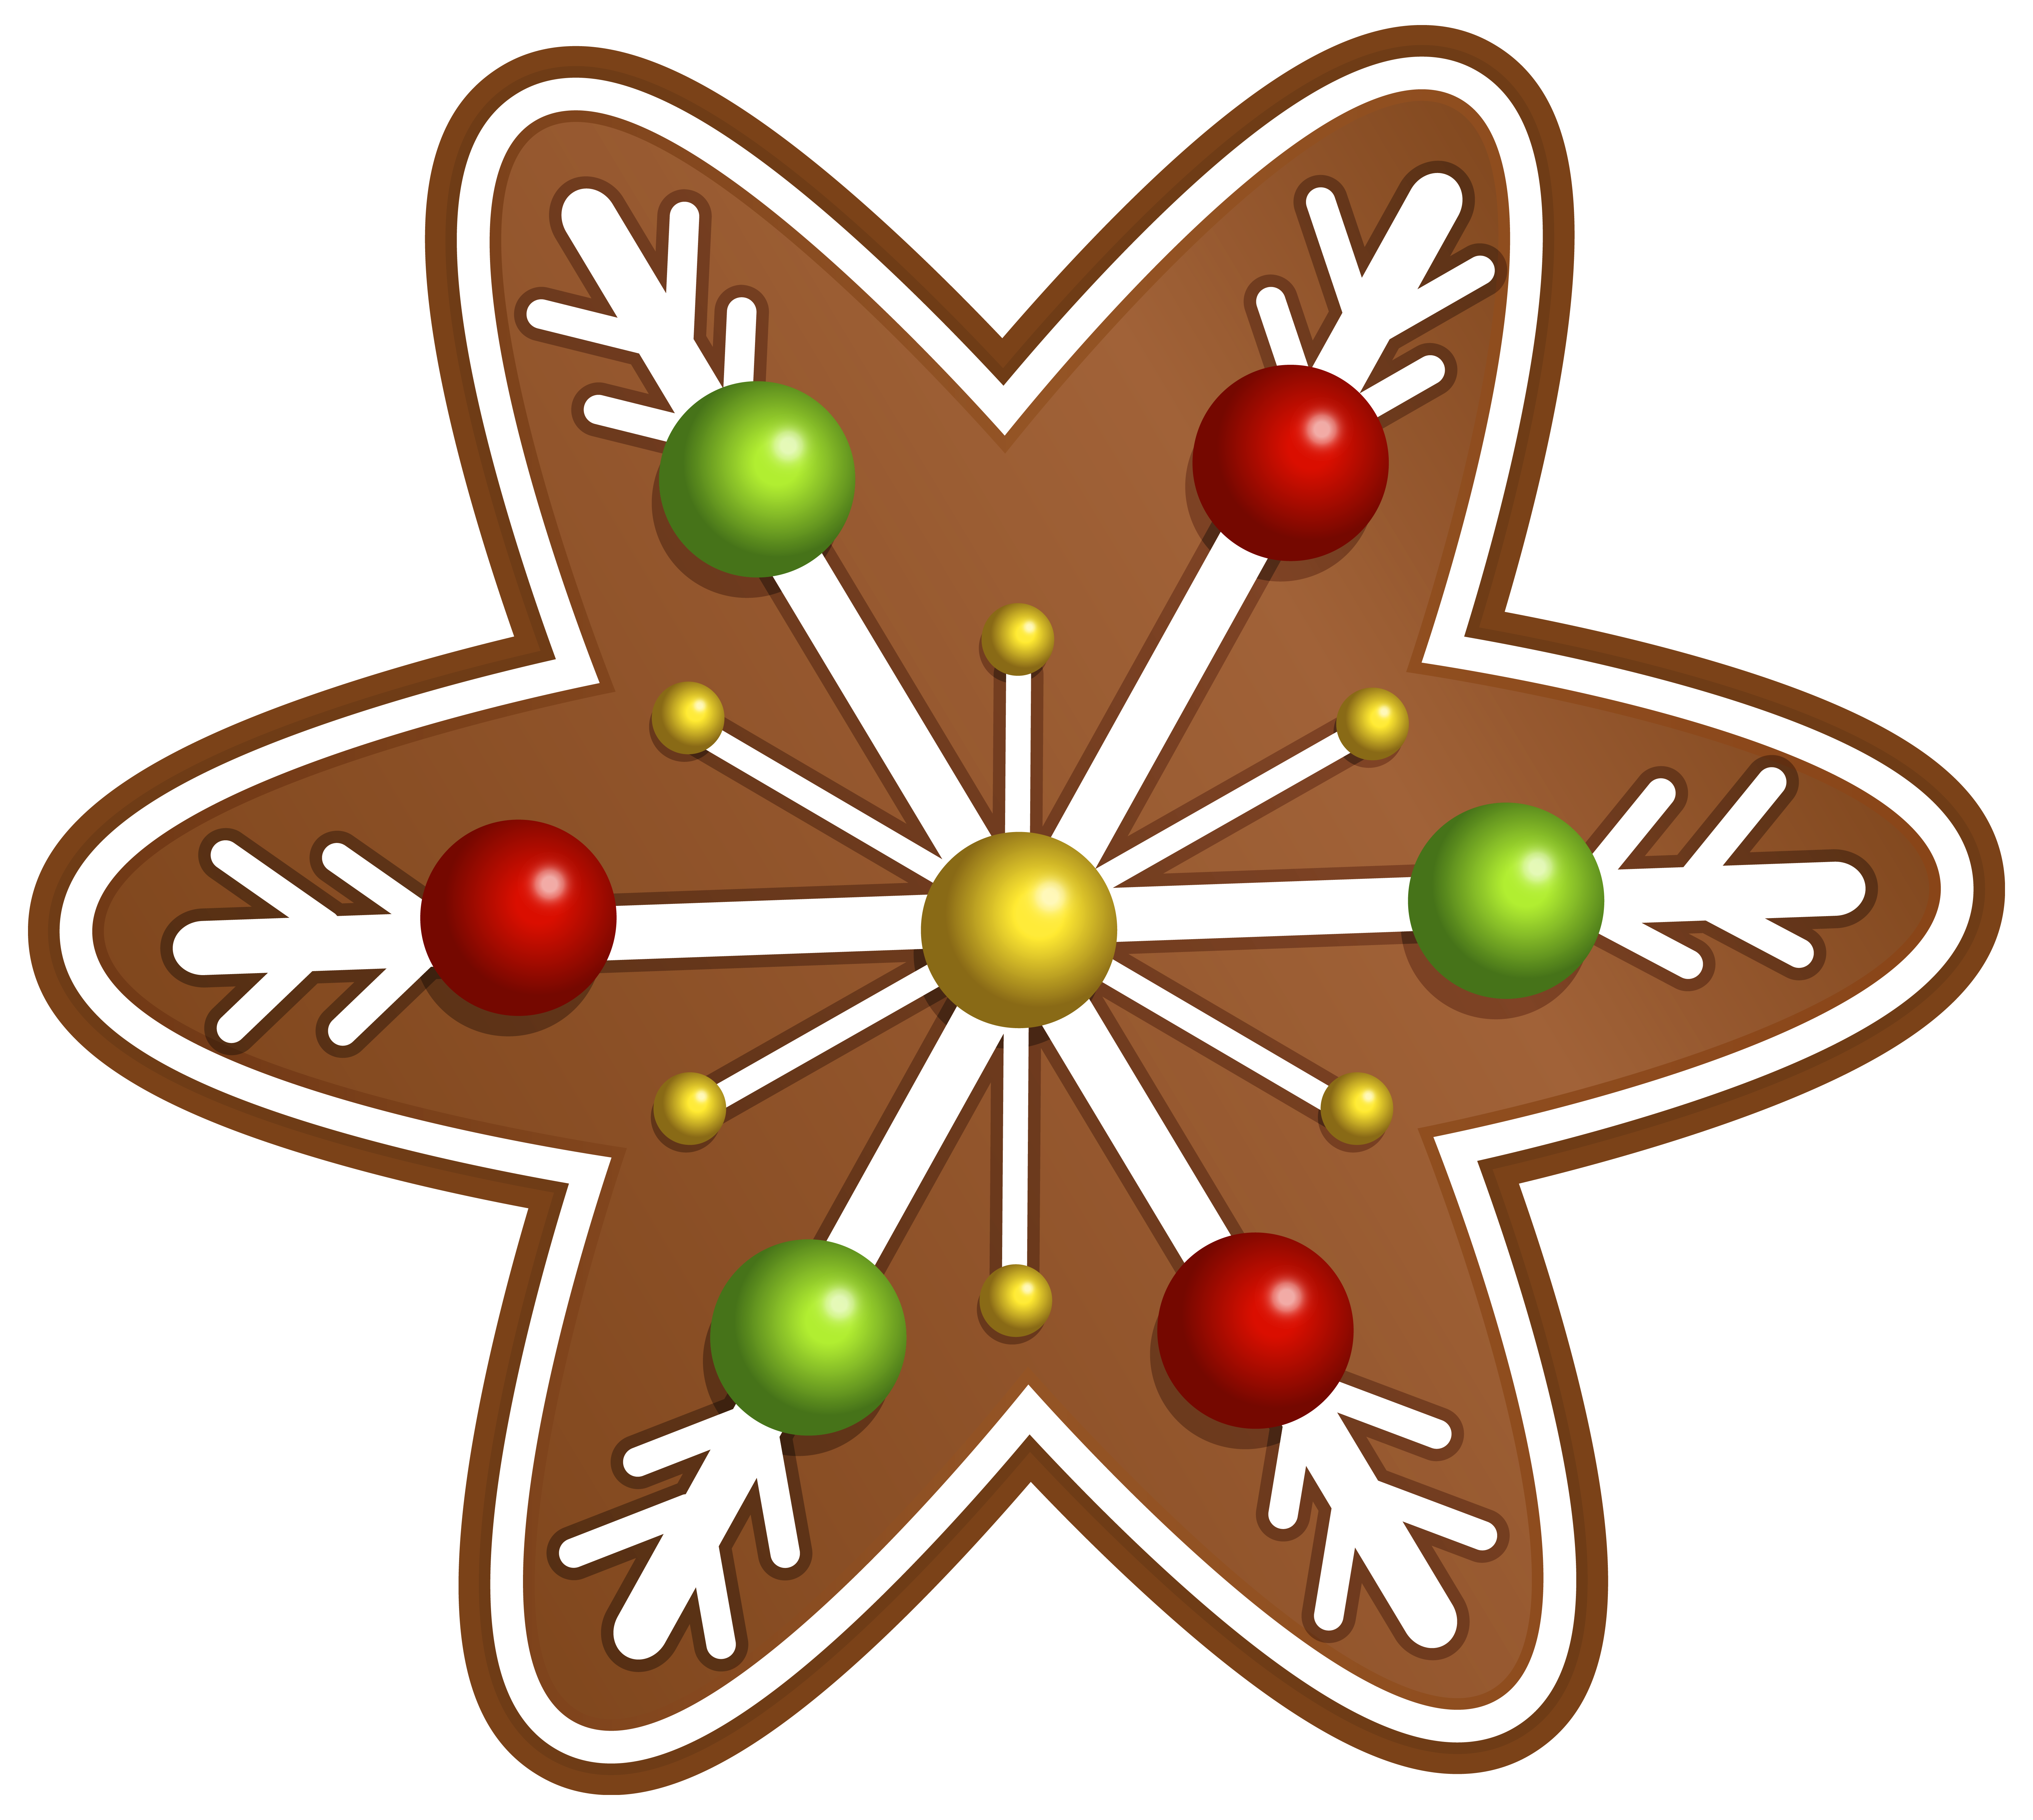 Christmas Cookie Star Png Clipart Image Gallery Yopriceville High Quality Images And Transparent Christmas Scrapbook Christmas Paintings Christmas Clipart